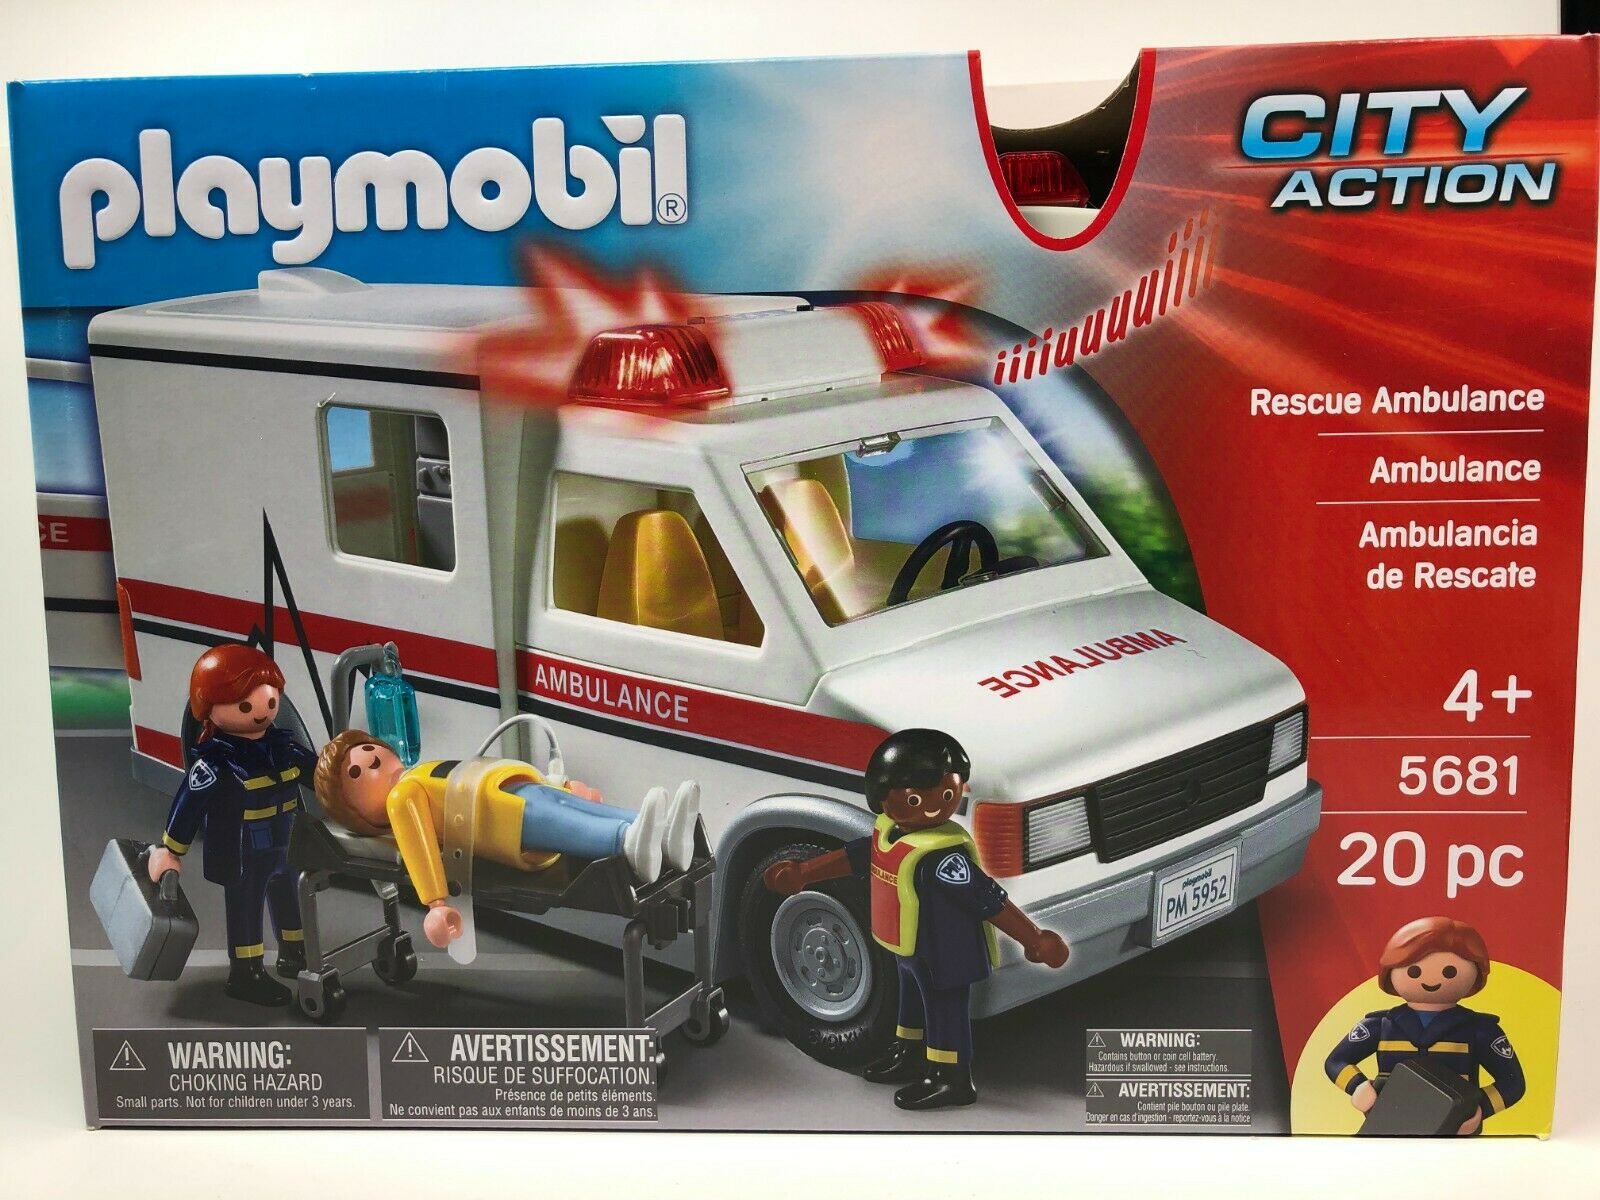 Playmobil City Action Rescue Ambulance - 5681 - 20 pc NEW in Sealed Box